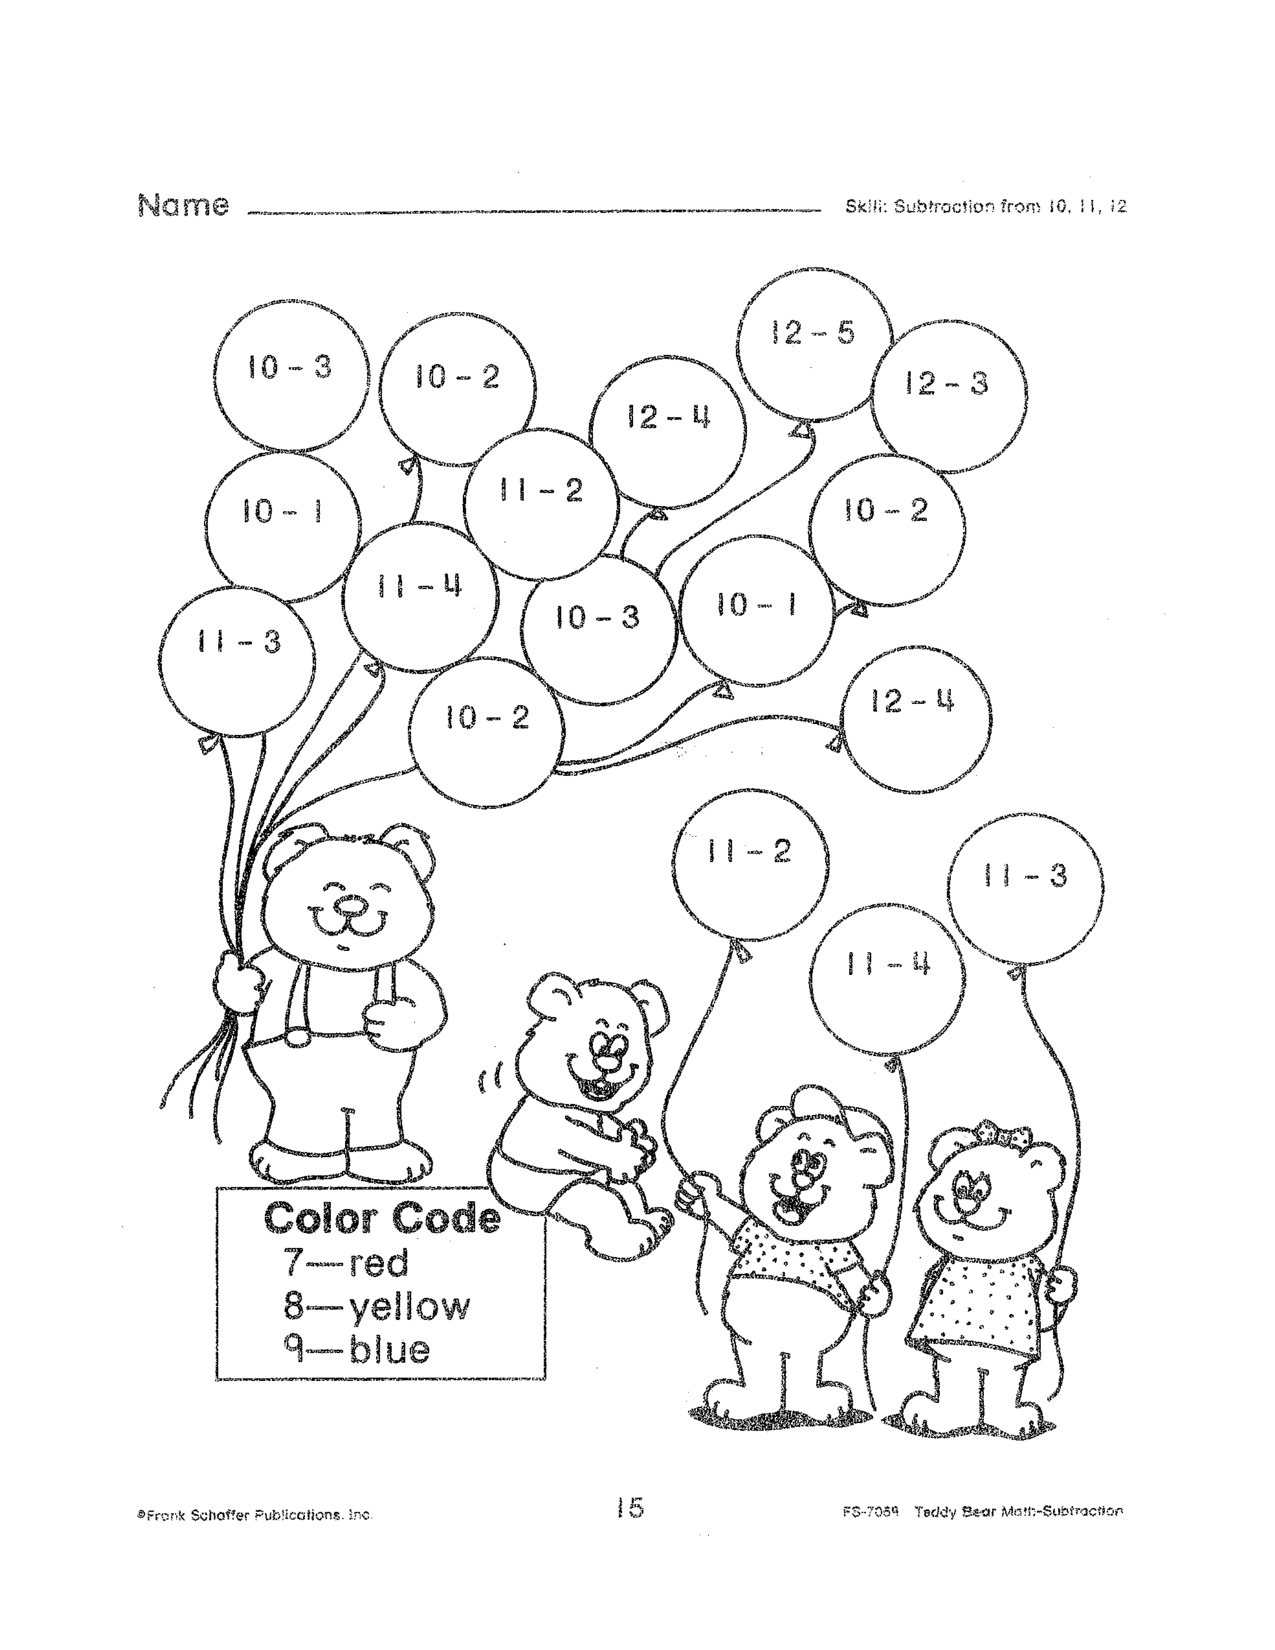 6 Best Images of Printable Worksheets For 2nd Grade - Free 2nd ...